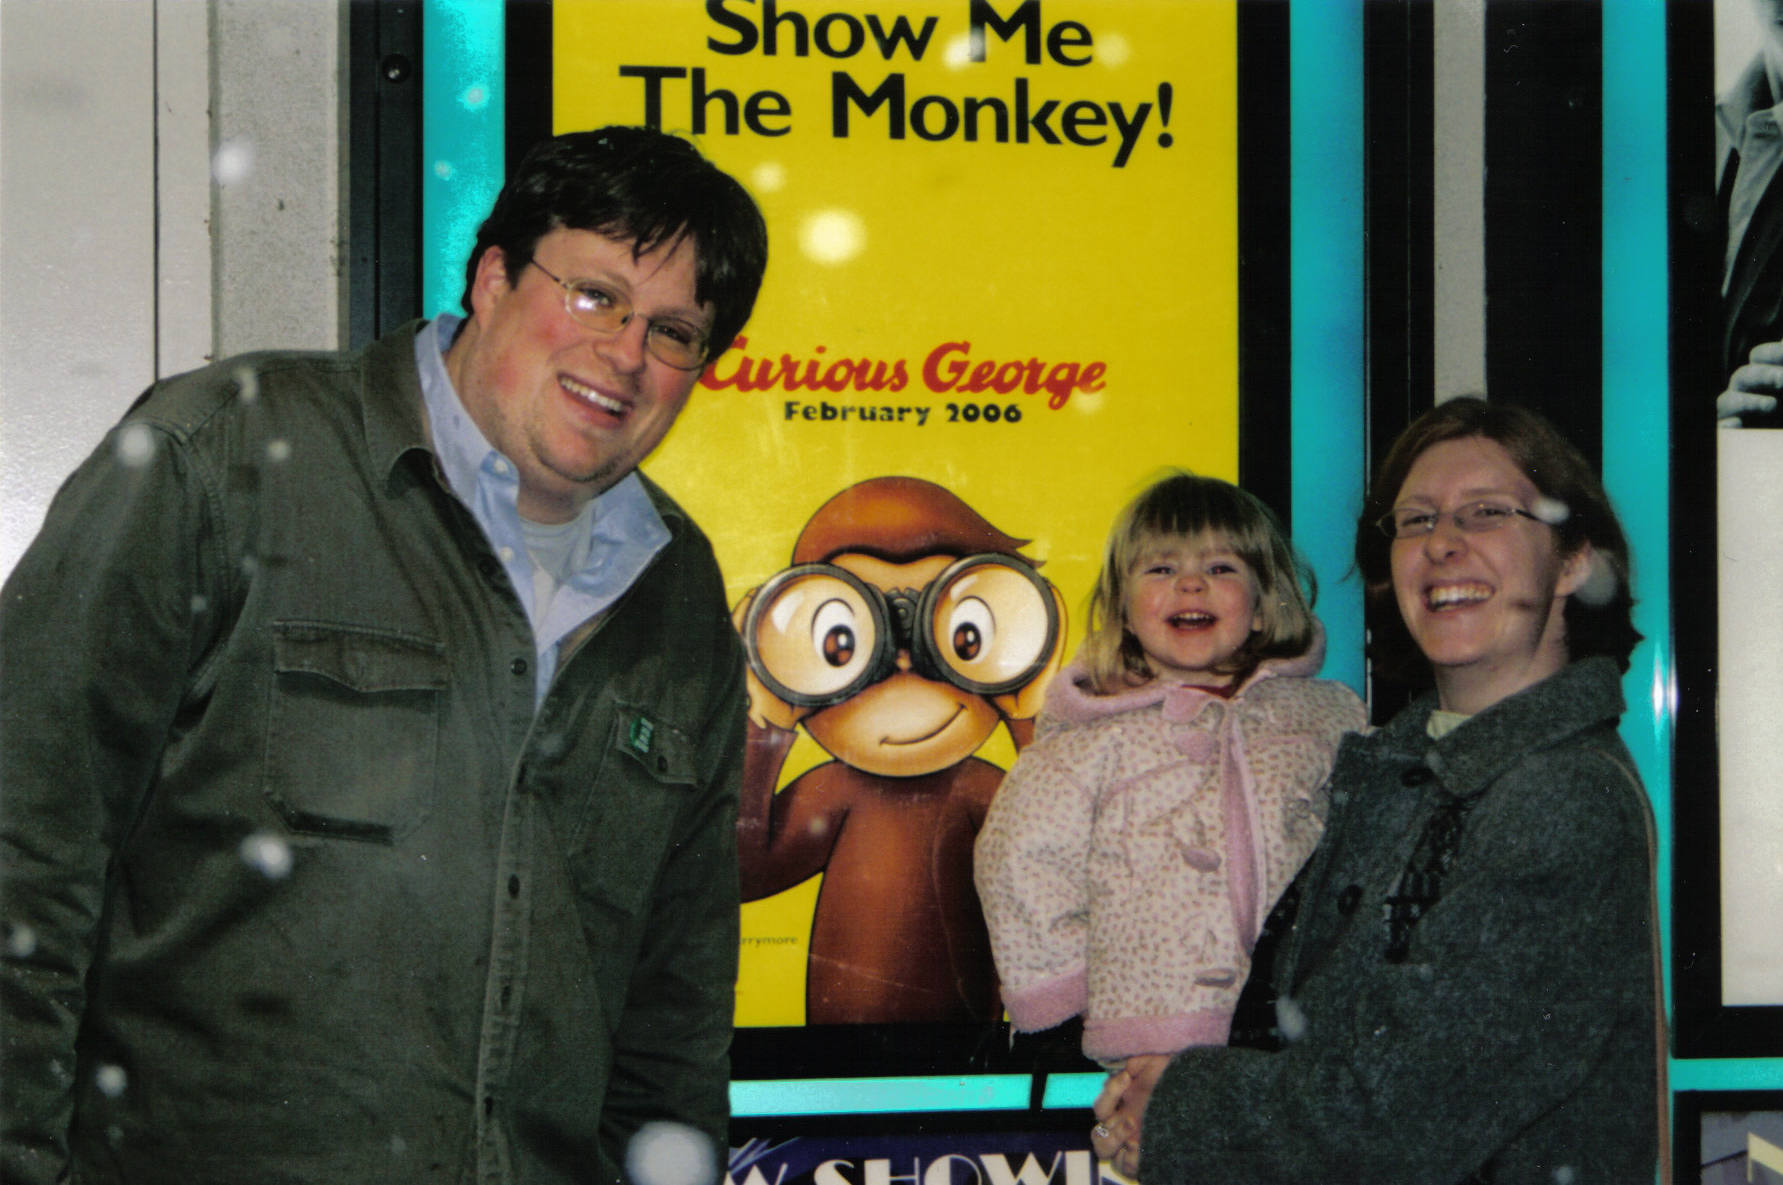 curious george 3 and the girl who wont stopping growing